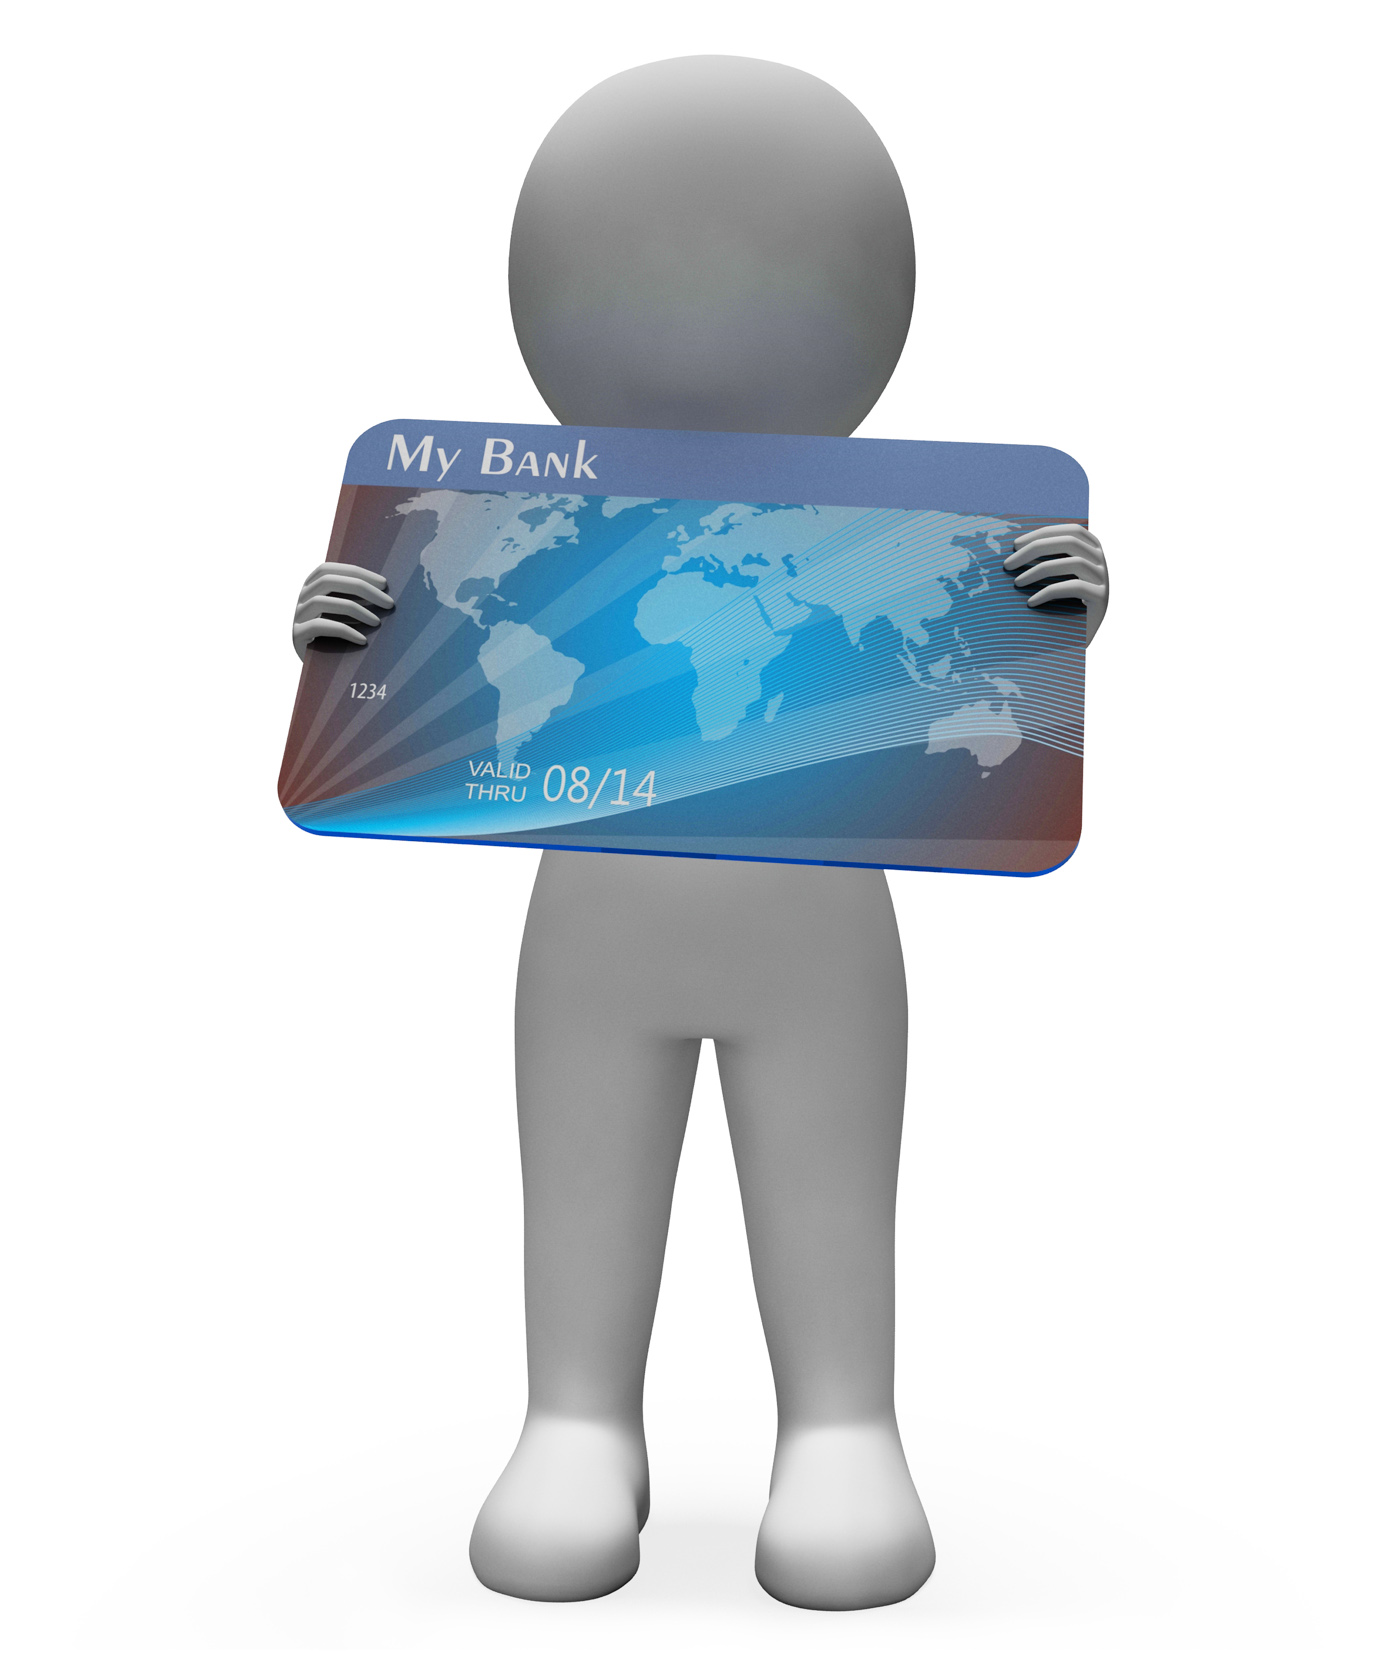 Debit Card Shows Credit Cards And Bank 3d Rendering, 3drendering, Man, OtherKeywords, Paying, HQ Photo